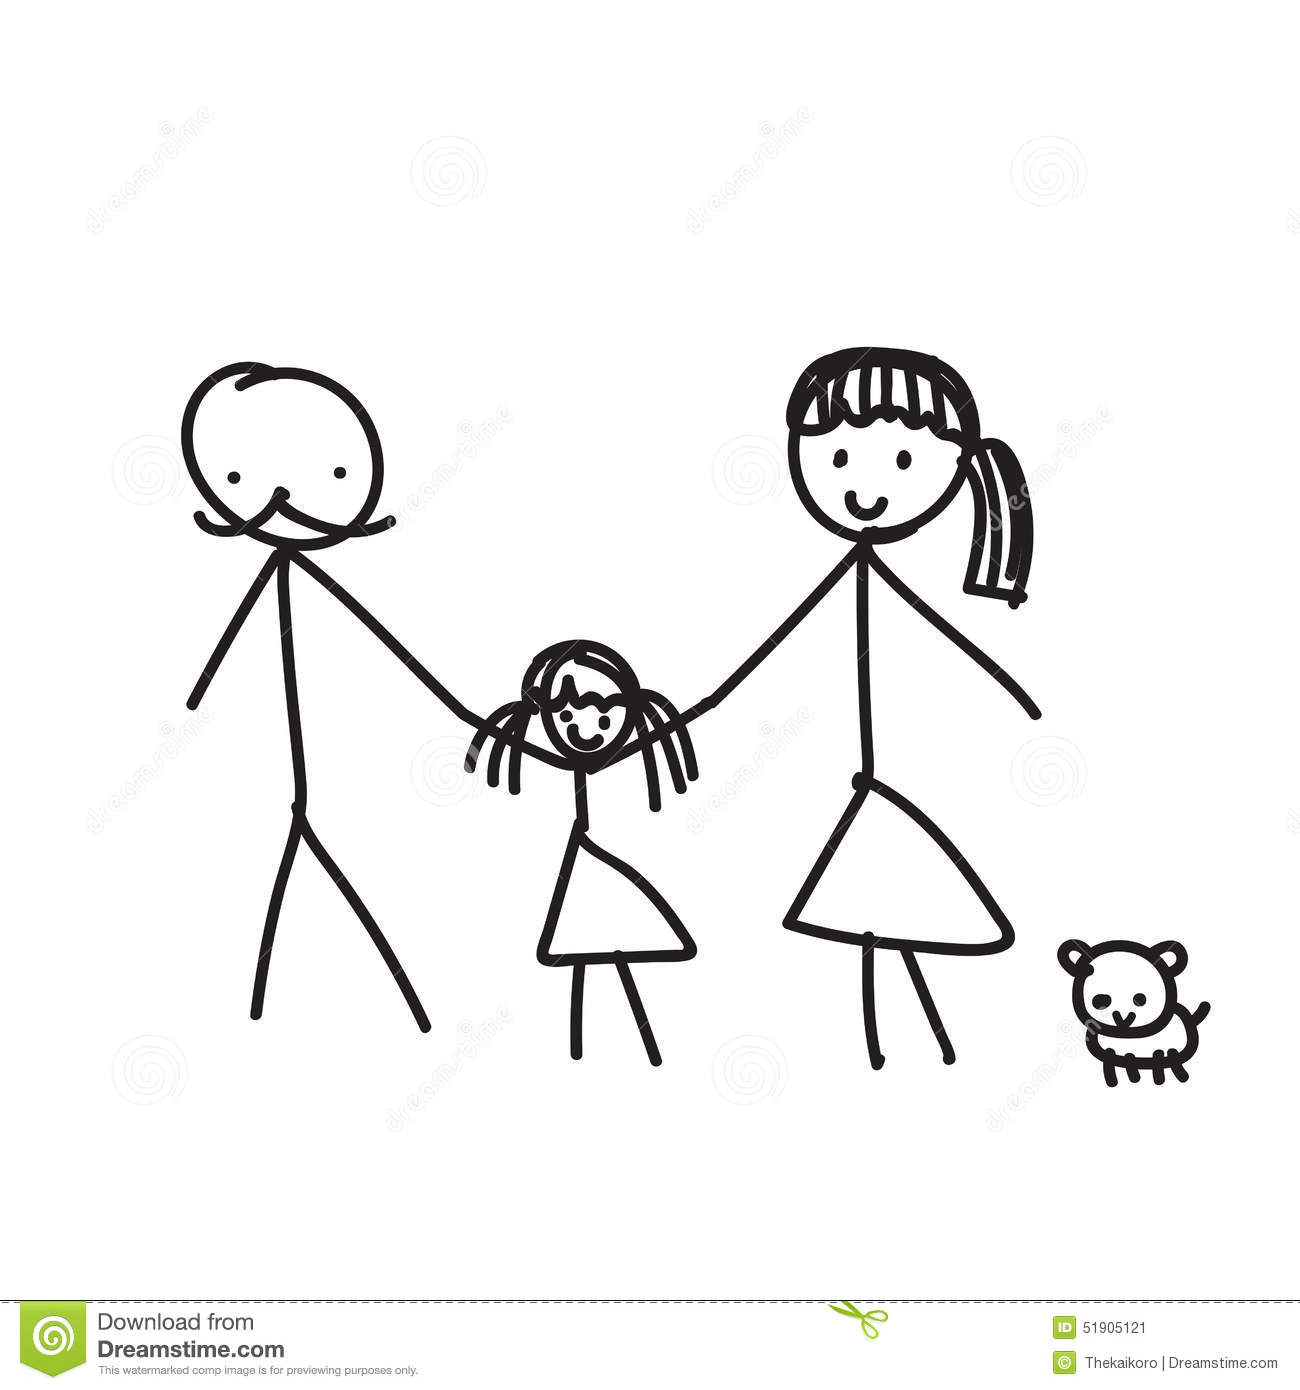 El dibujo lineal de mano una familia parents animal